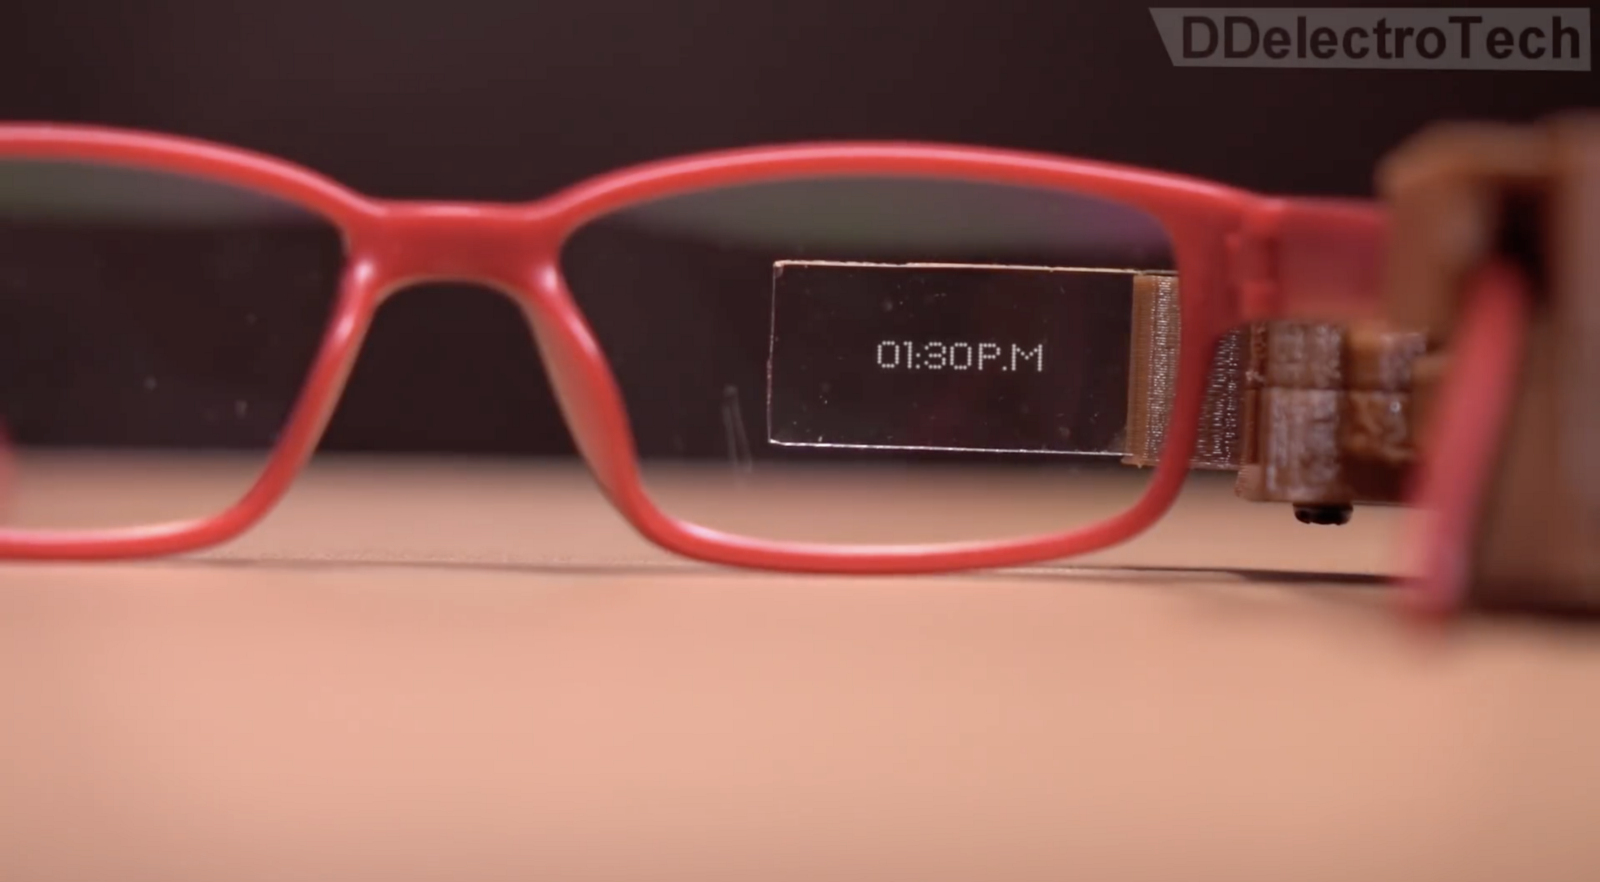 Diy google glass for under 10 hackster blog his wearable project uses an arduino pro mini with an oled display module to present info from the users smartphone on a piece of transparent glass ccuart Image collections